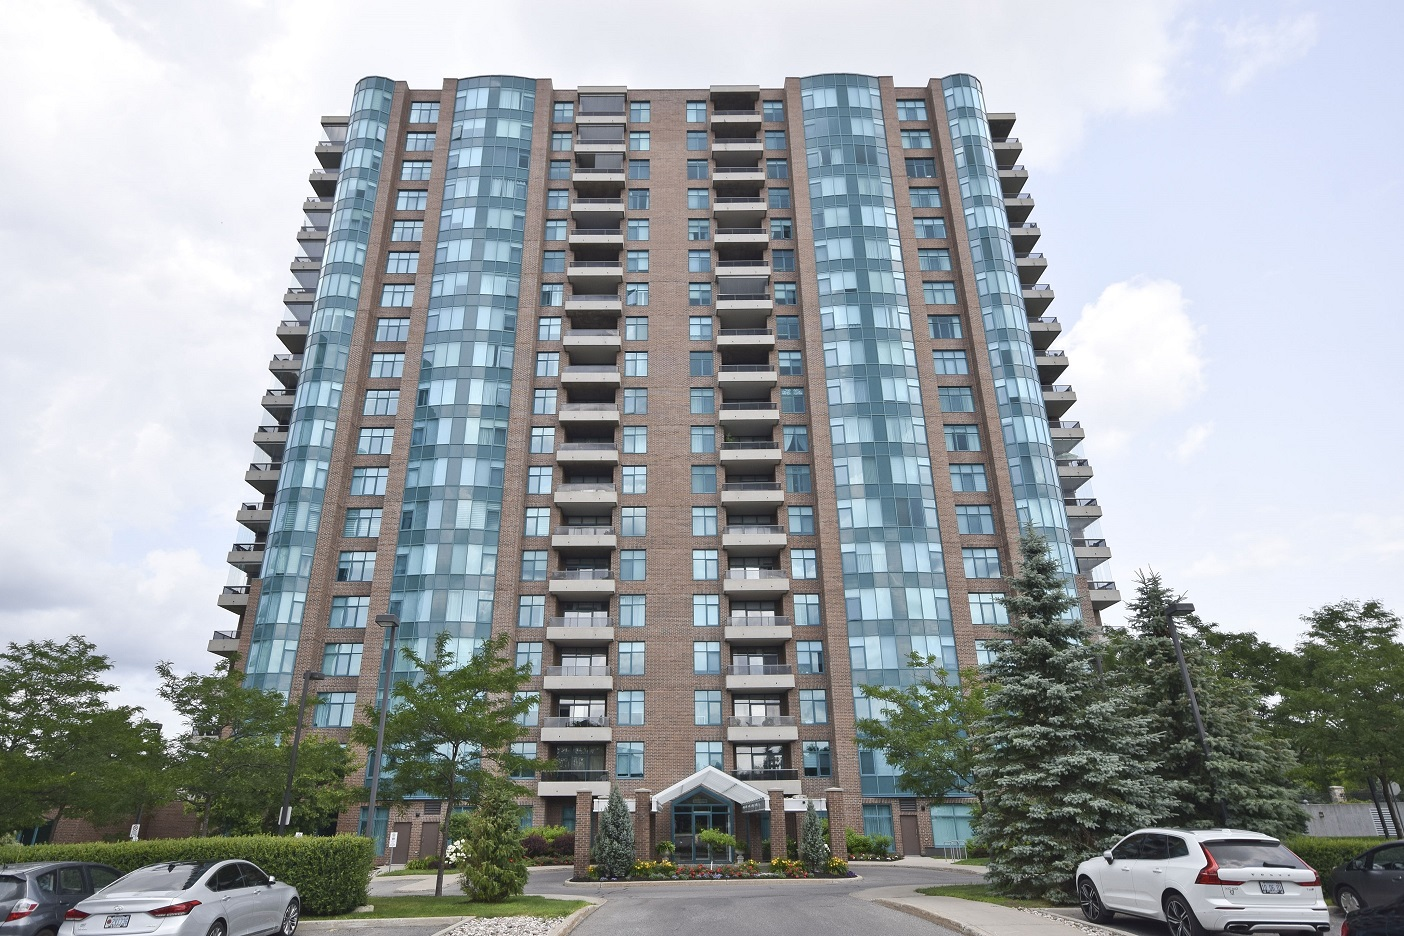 3580 Rivergate Unit 1604 | Gorgeous and Well-Maintained 2 Bedroom Condo in Quinterra